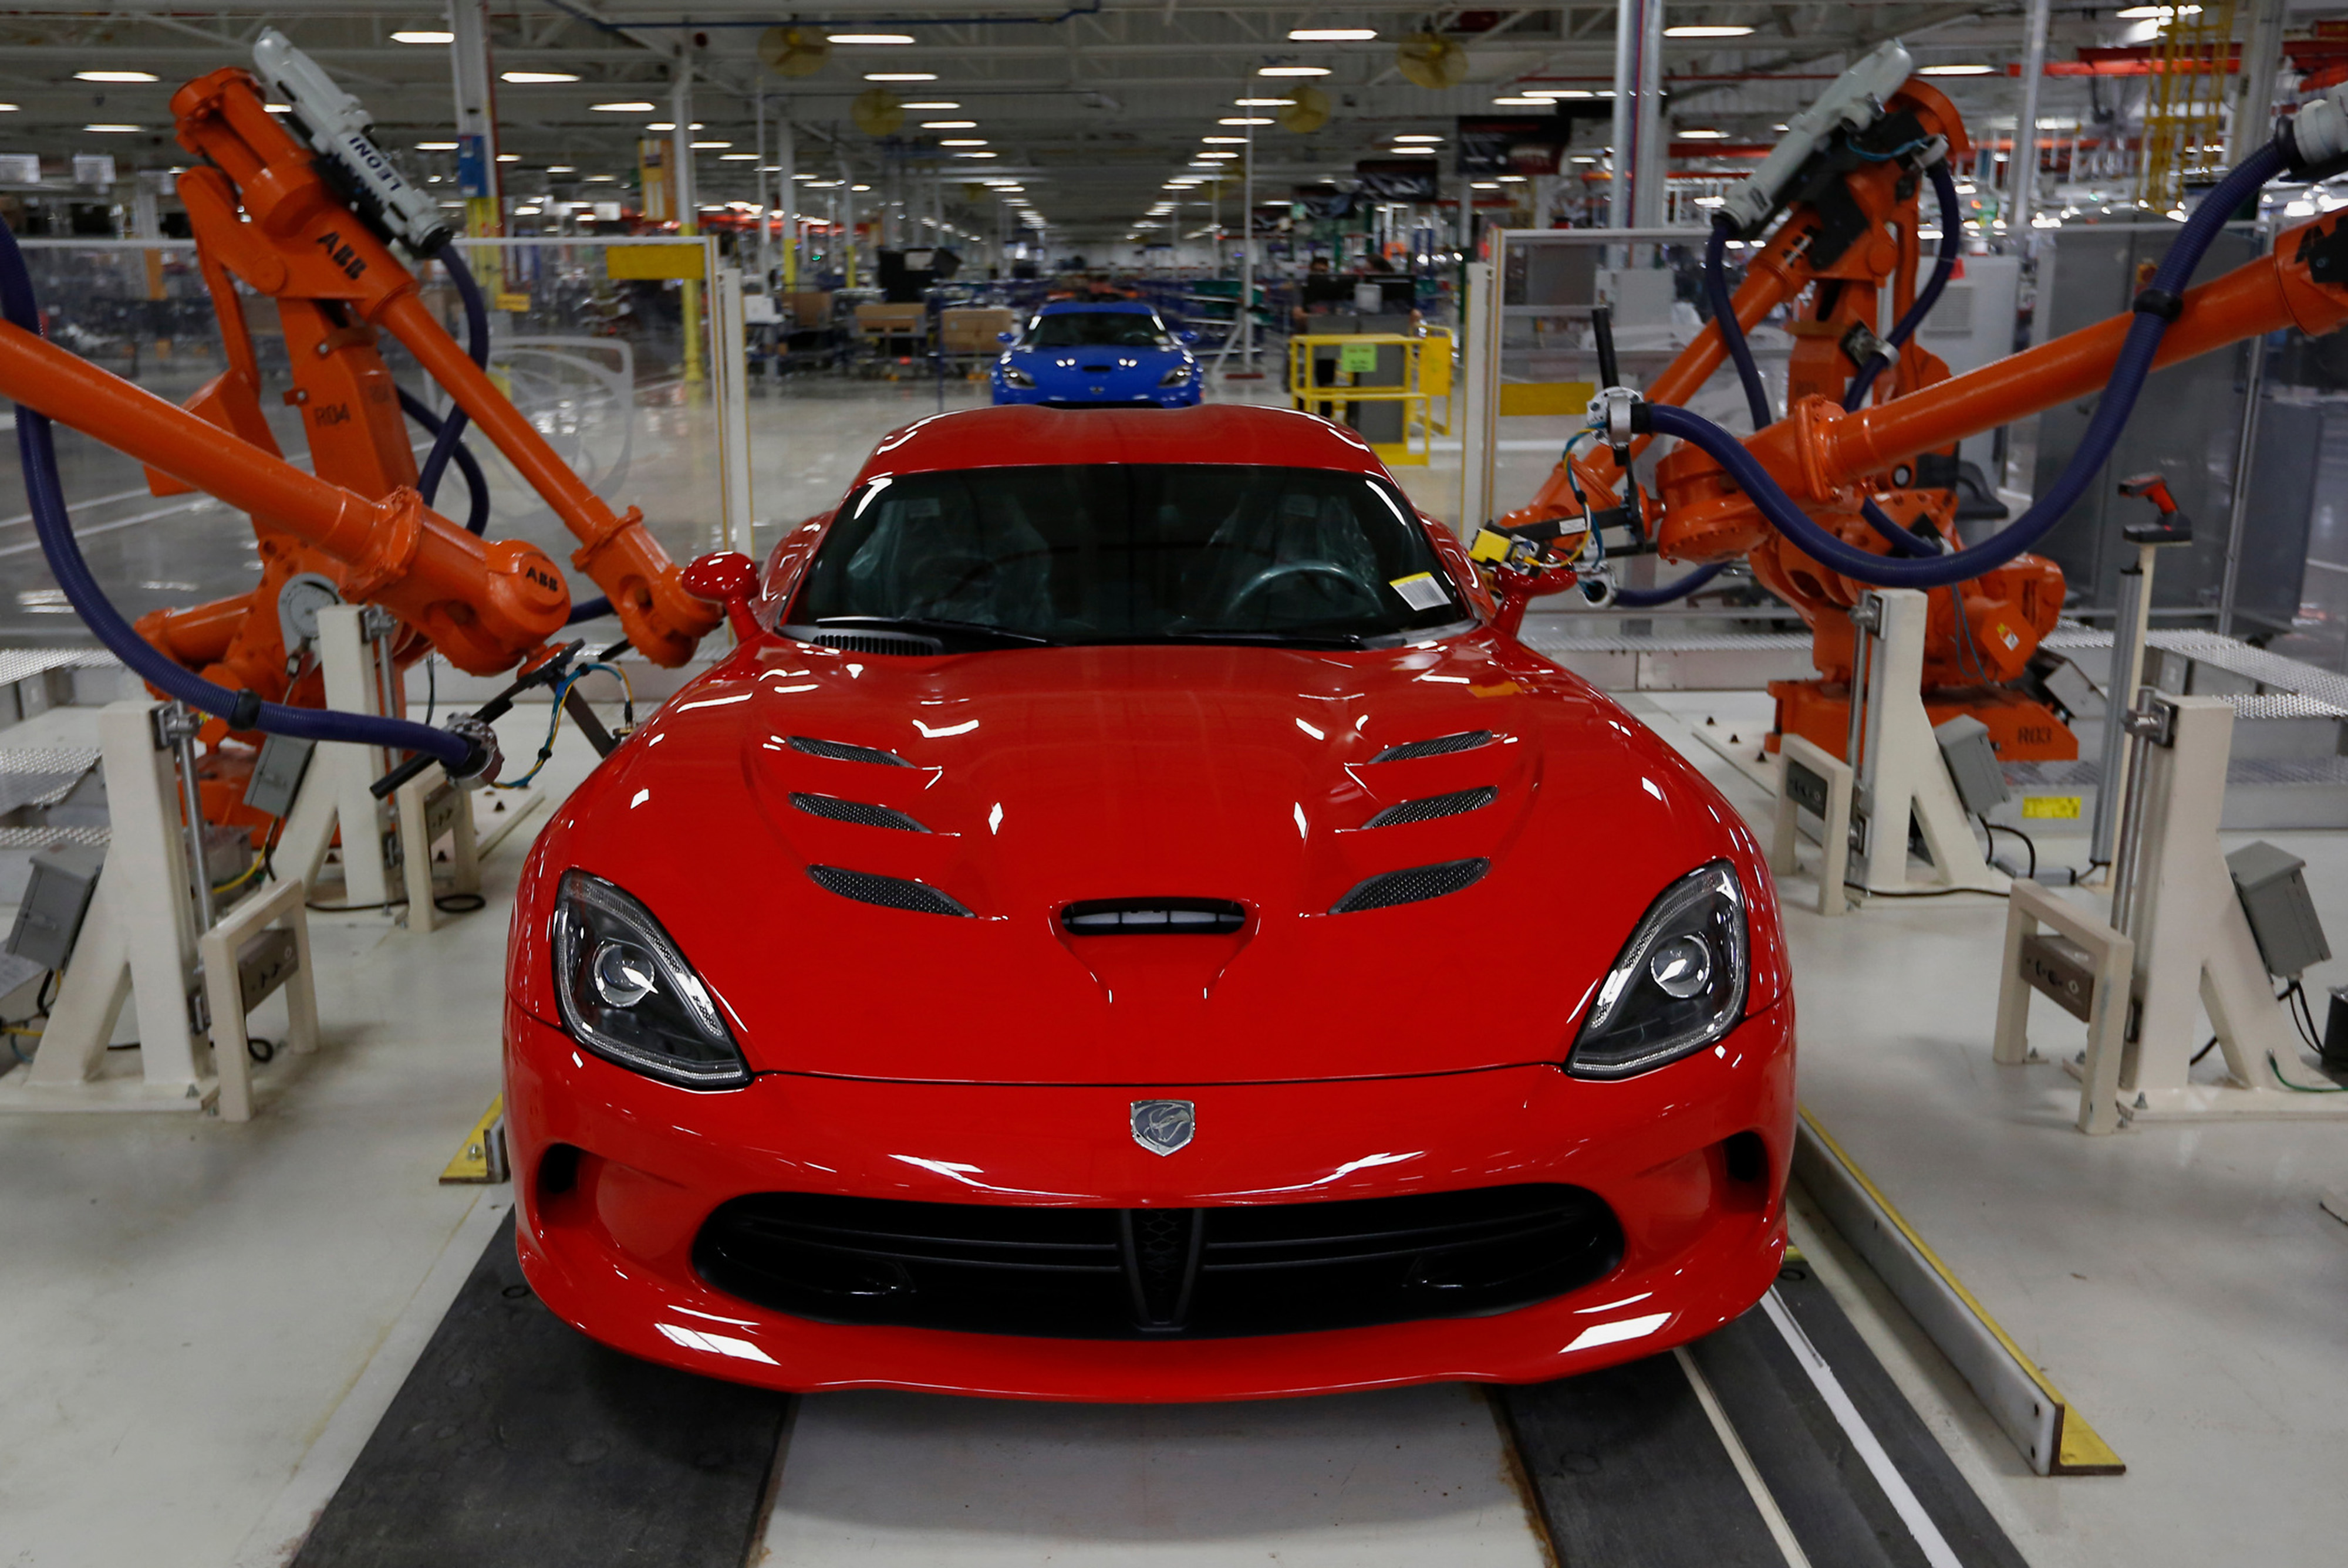 Dodge Viper Production At The FCA US Conner Avenue Assembly Plant